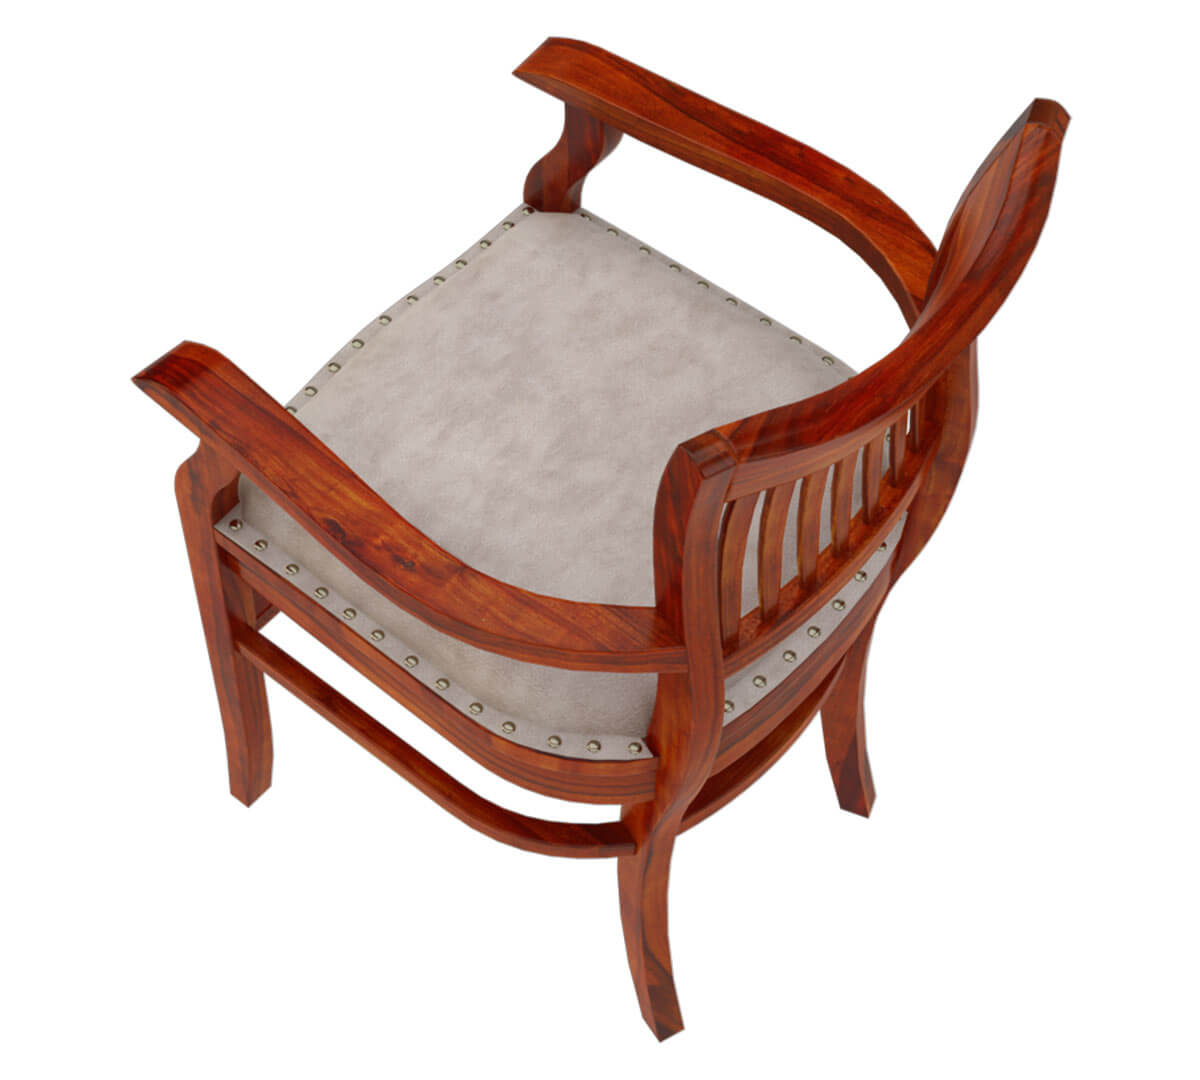 Solid Wood Arm Chair Leather Cushion Dining Furniture : 54454 from www.sierralivingconcepts.com size 1200 x 1200 jpeg 73kB